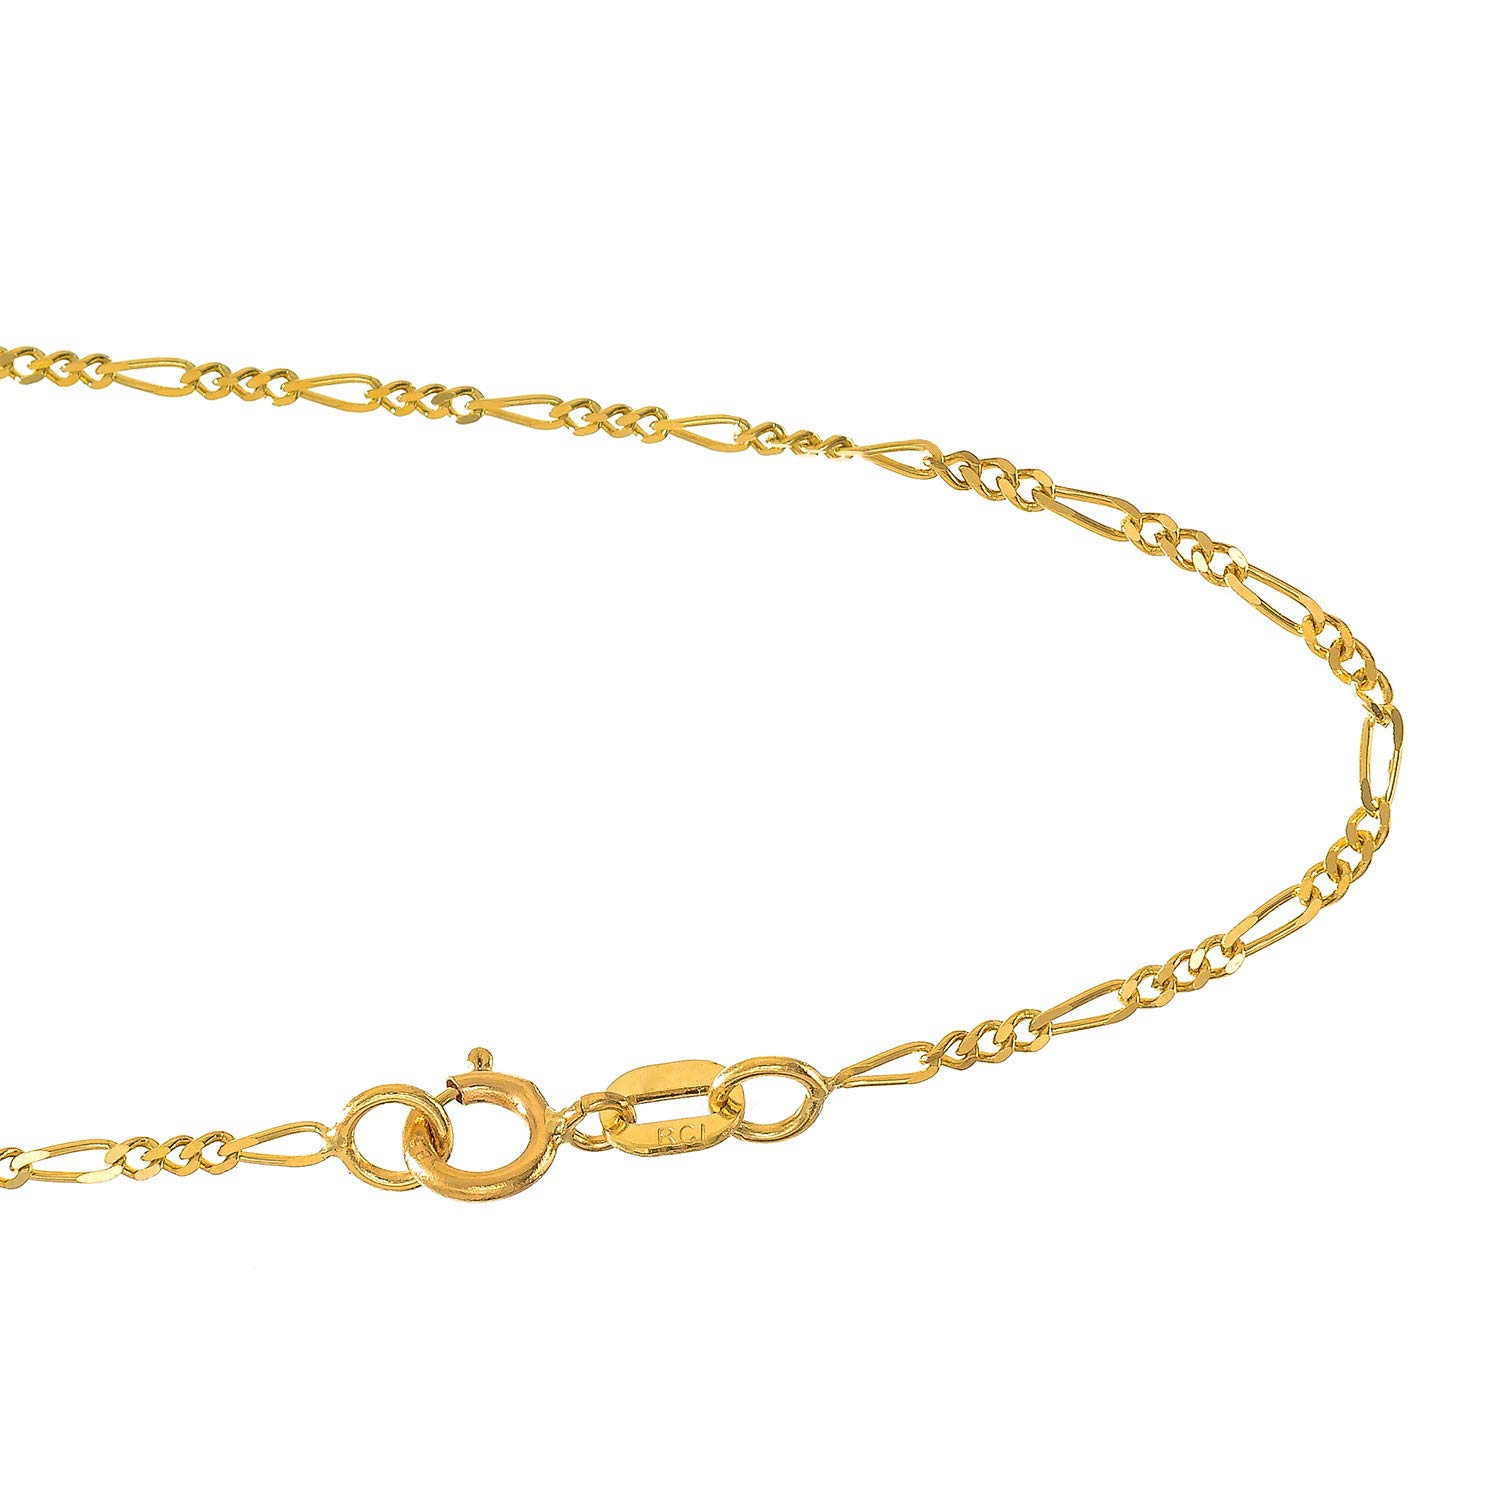 JewelStop 14k Solid Yellow Gold 1.3 mm Figaro Chain Anklet, Spring Ring Clasp - 10''